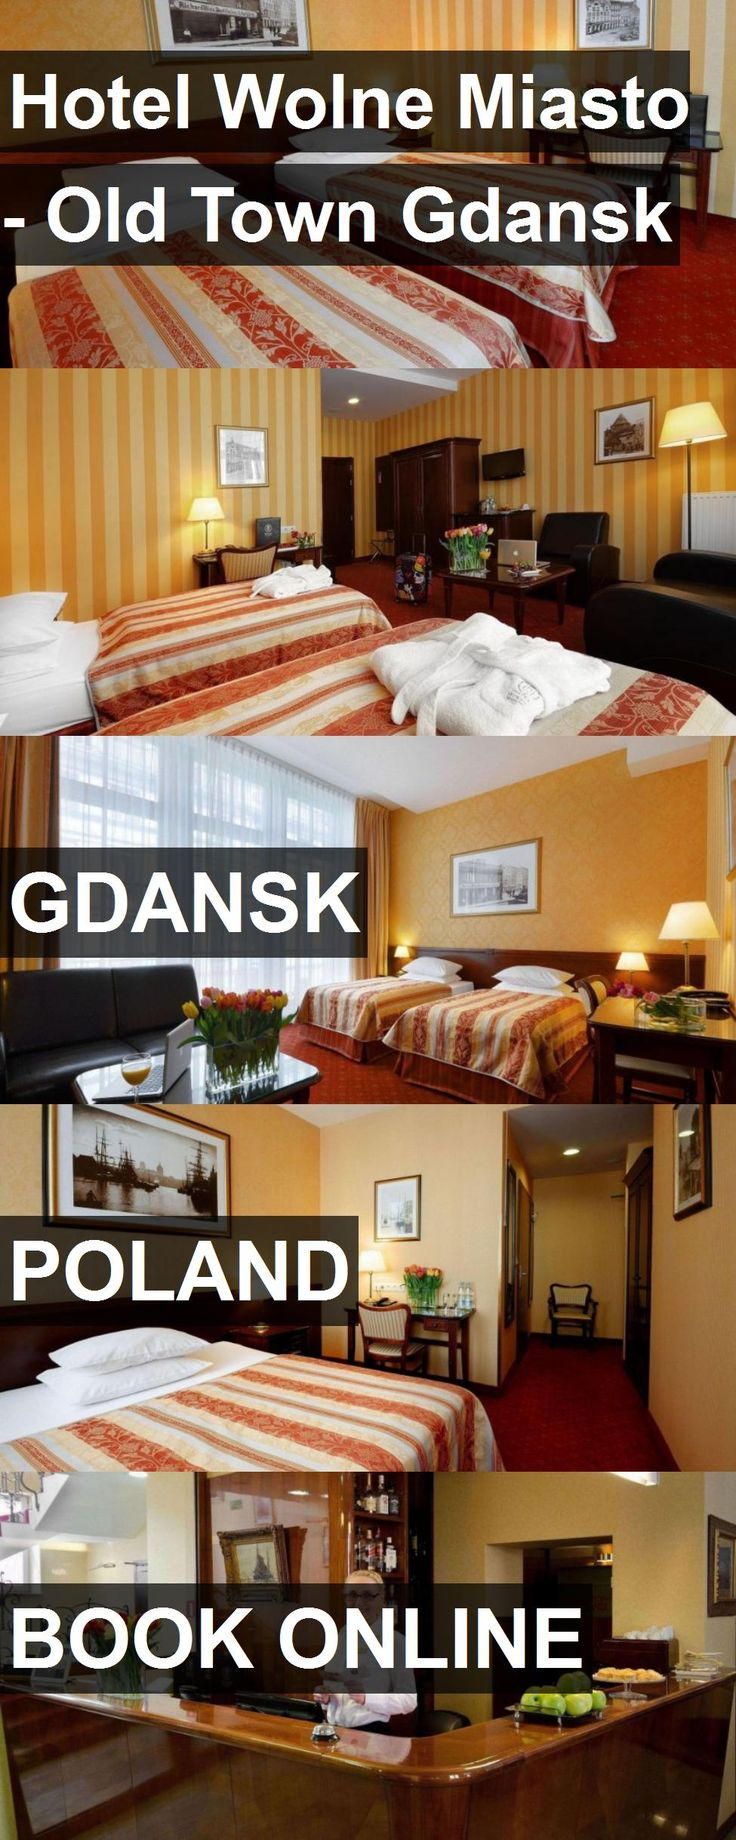 Hotel Wolne Miasto - Old Town Gdansk in Gdansk, Poland. For more information, photos, reviews and best prices please follow the link. #Poland #Gdansk #travel #vacation #hotel